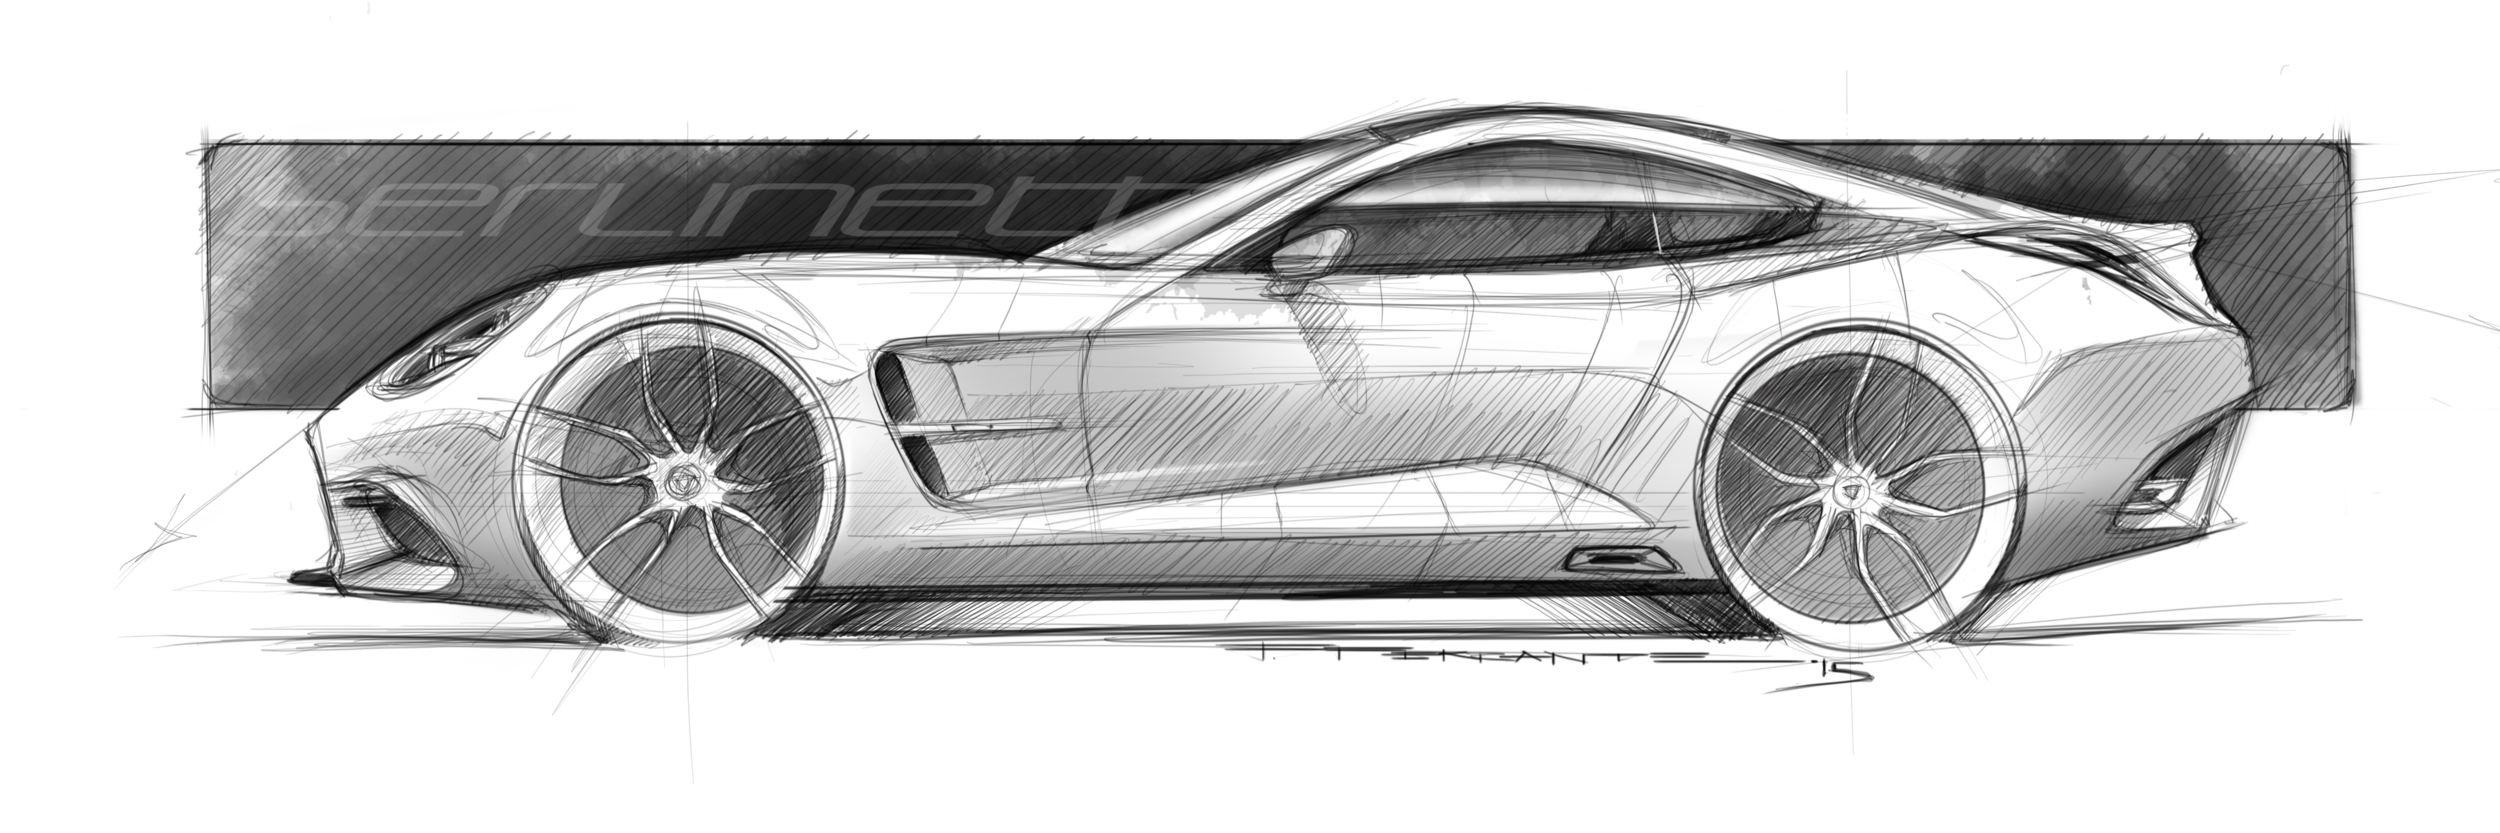 Puritalia Berlinetta_SIDE SKETCH.PNG